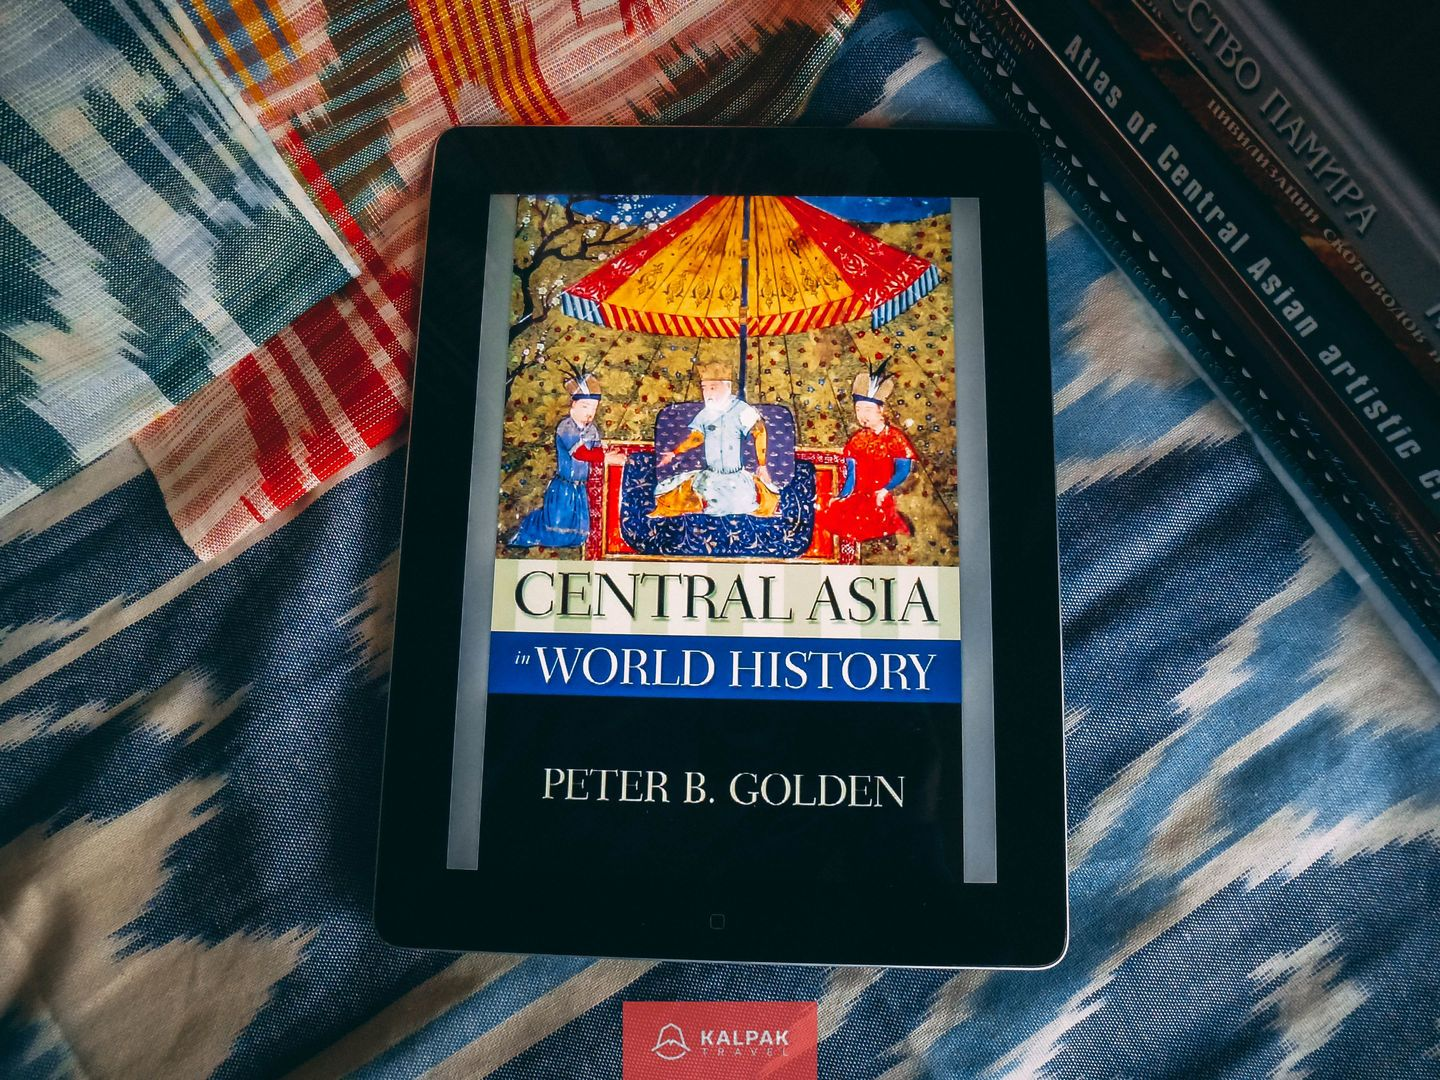 Central Asia history books